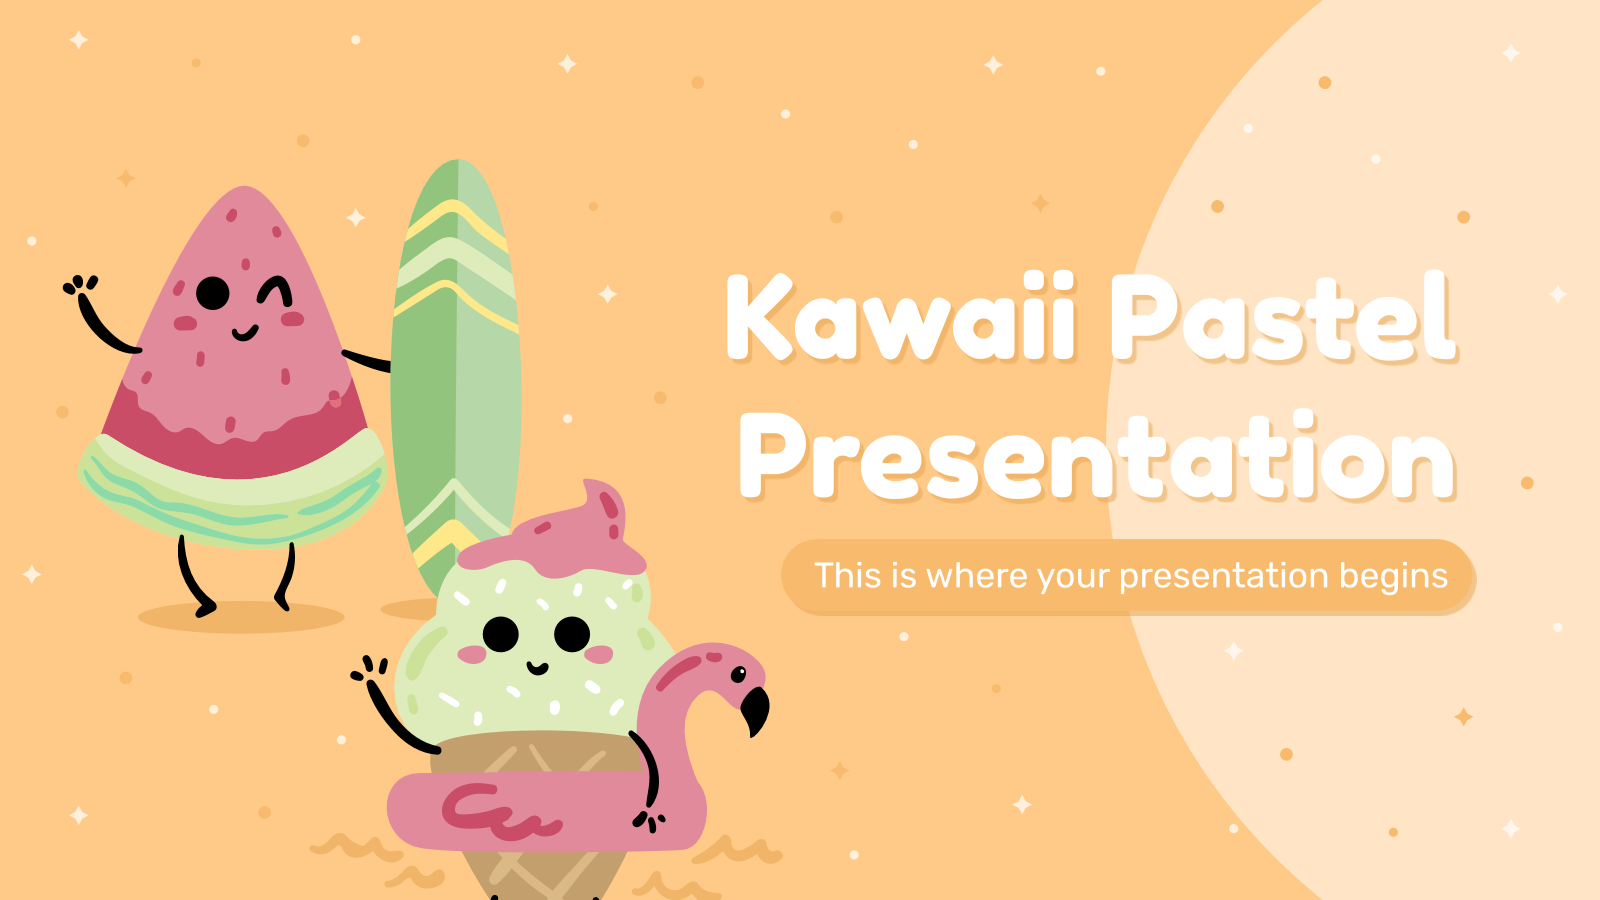 Kawaii Pastel presentation template